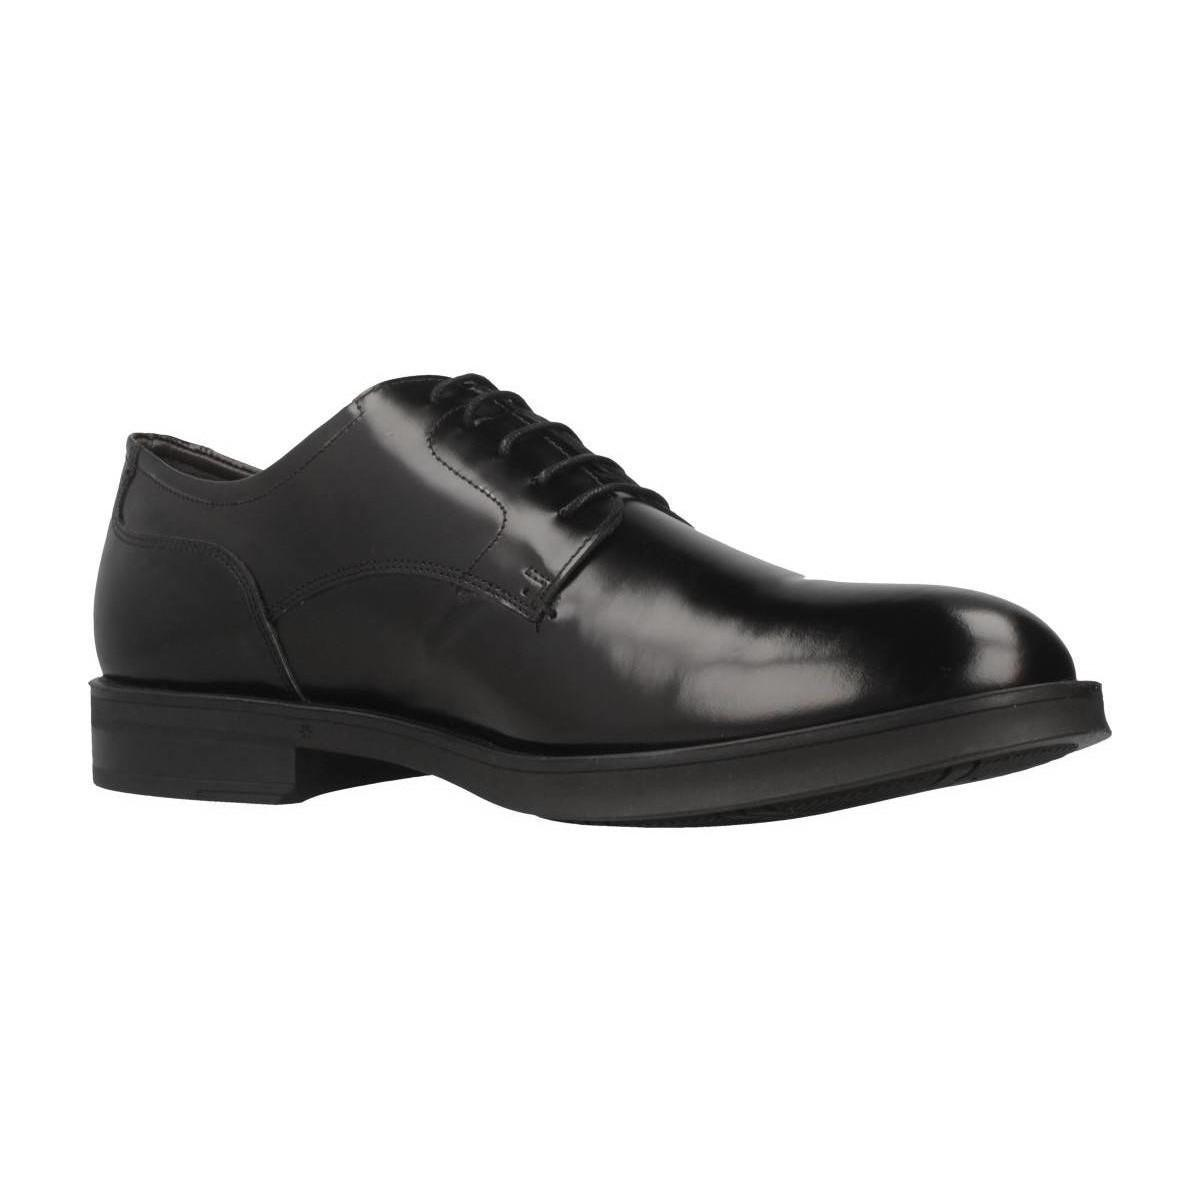 5f52a614e7667 Stonefly Class Ii Men's In Black in Black for Men - Lyst